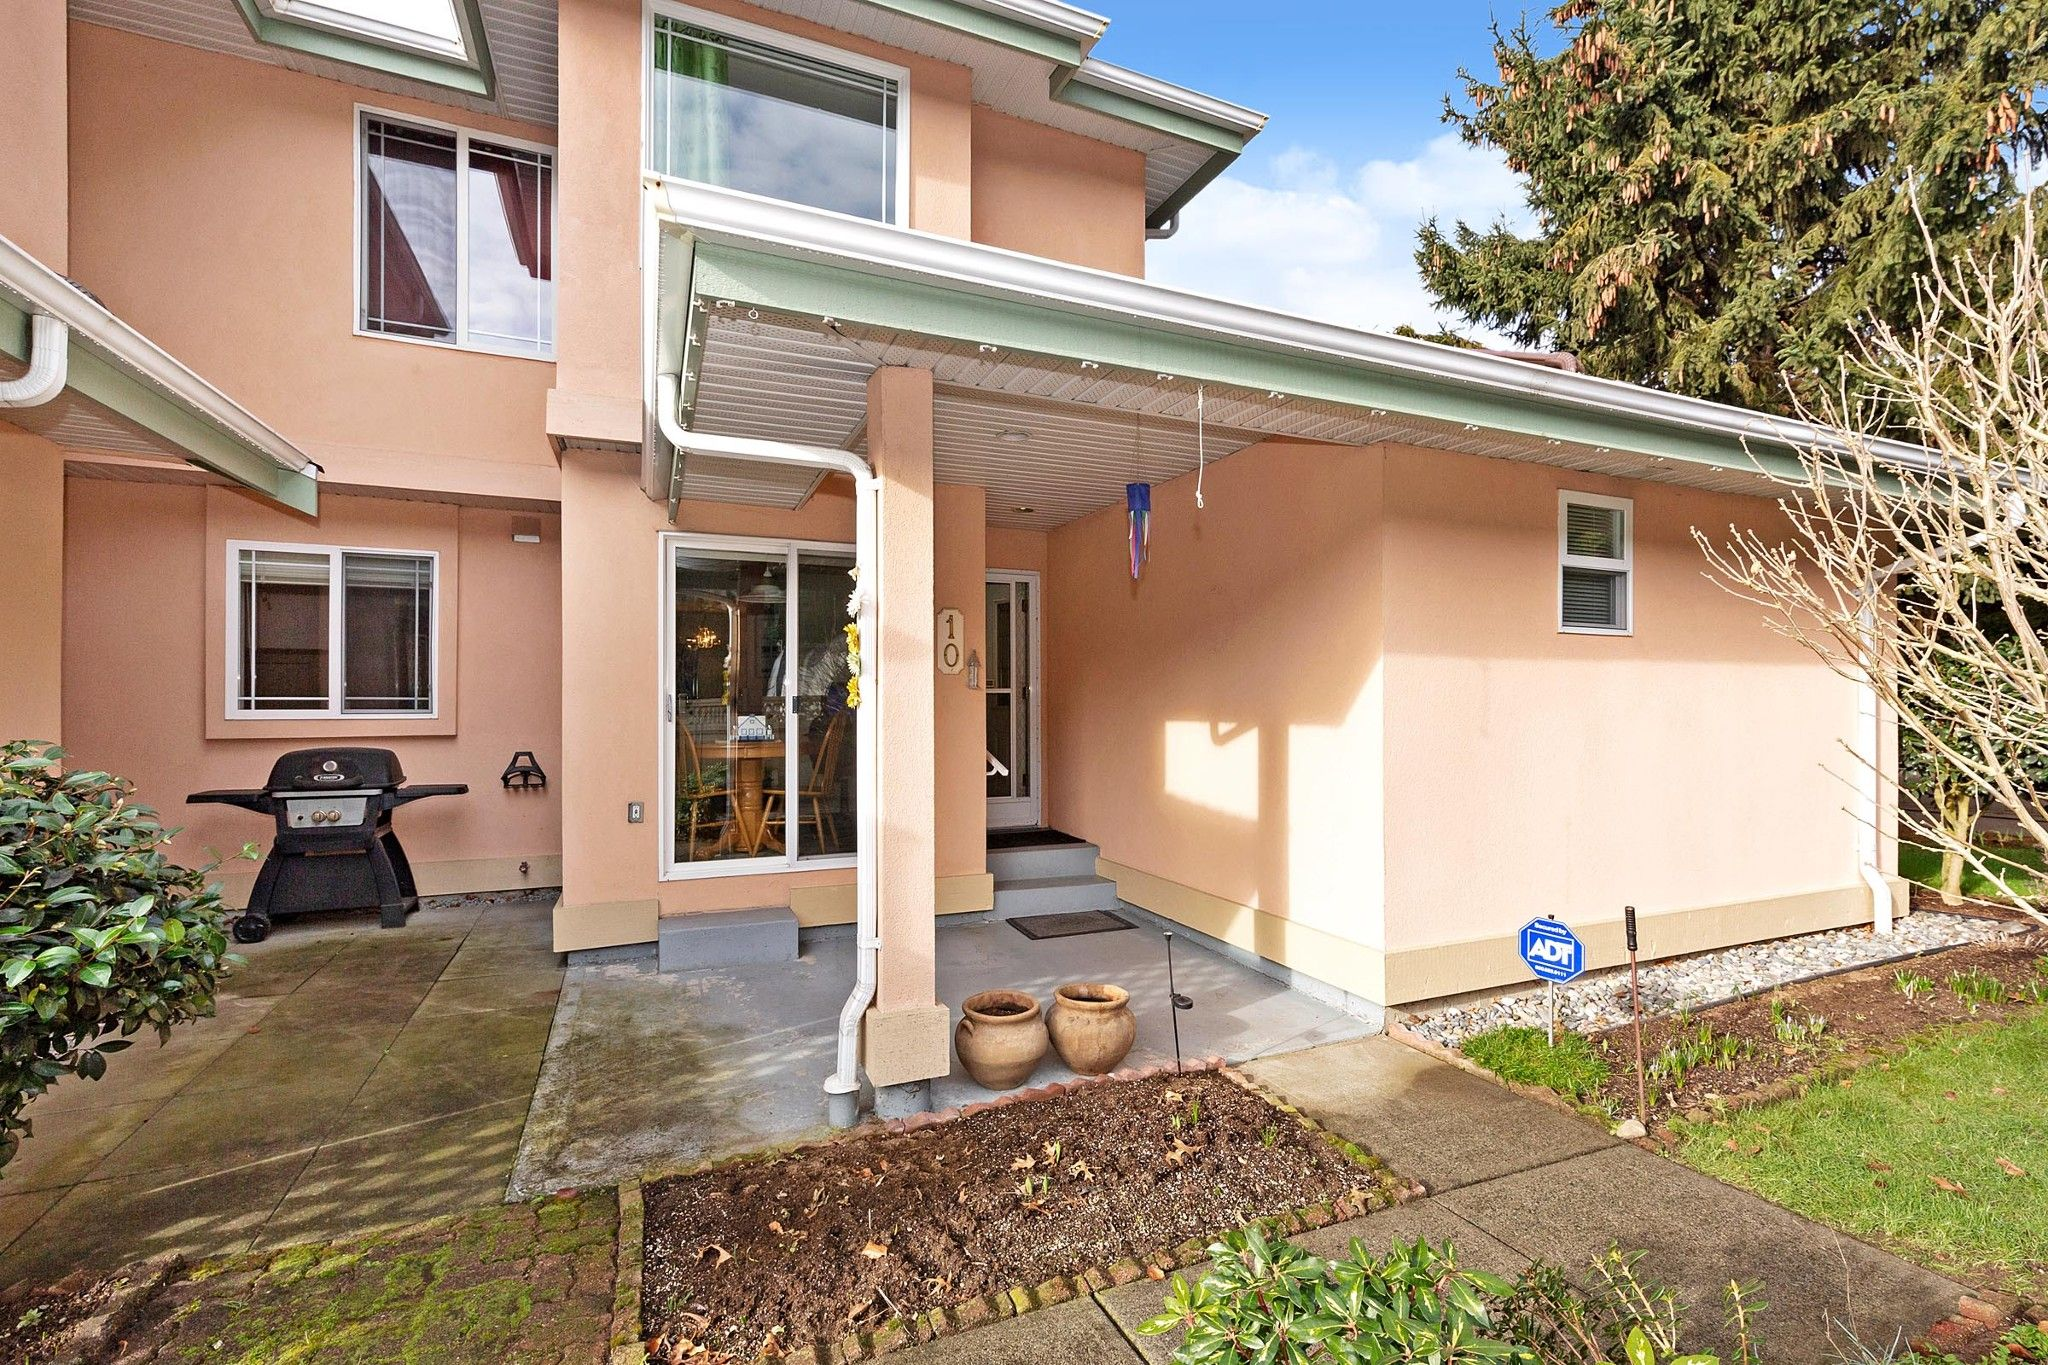 """Main Photo: 10 19044 118B Avenue in Pitt Meadows: Central Meadows Townhouse for sale in """"PIONEER MEADOWS"""" : MLS®# R2534343"""